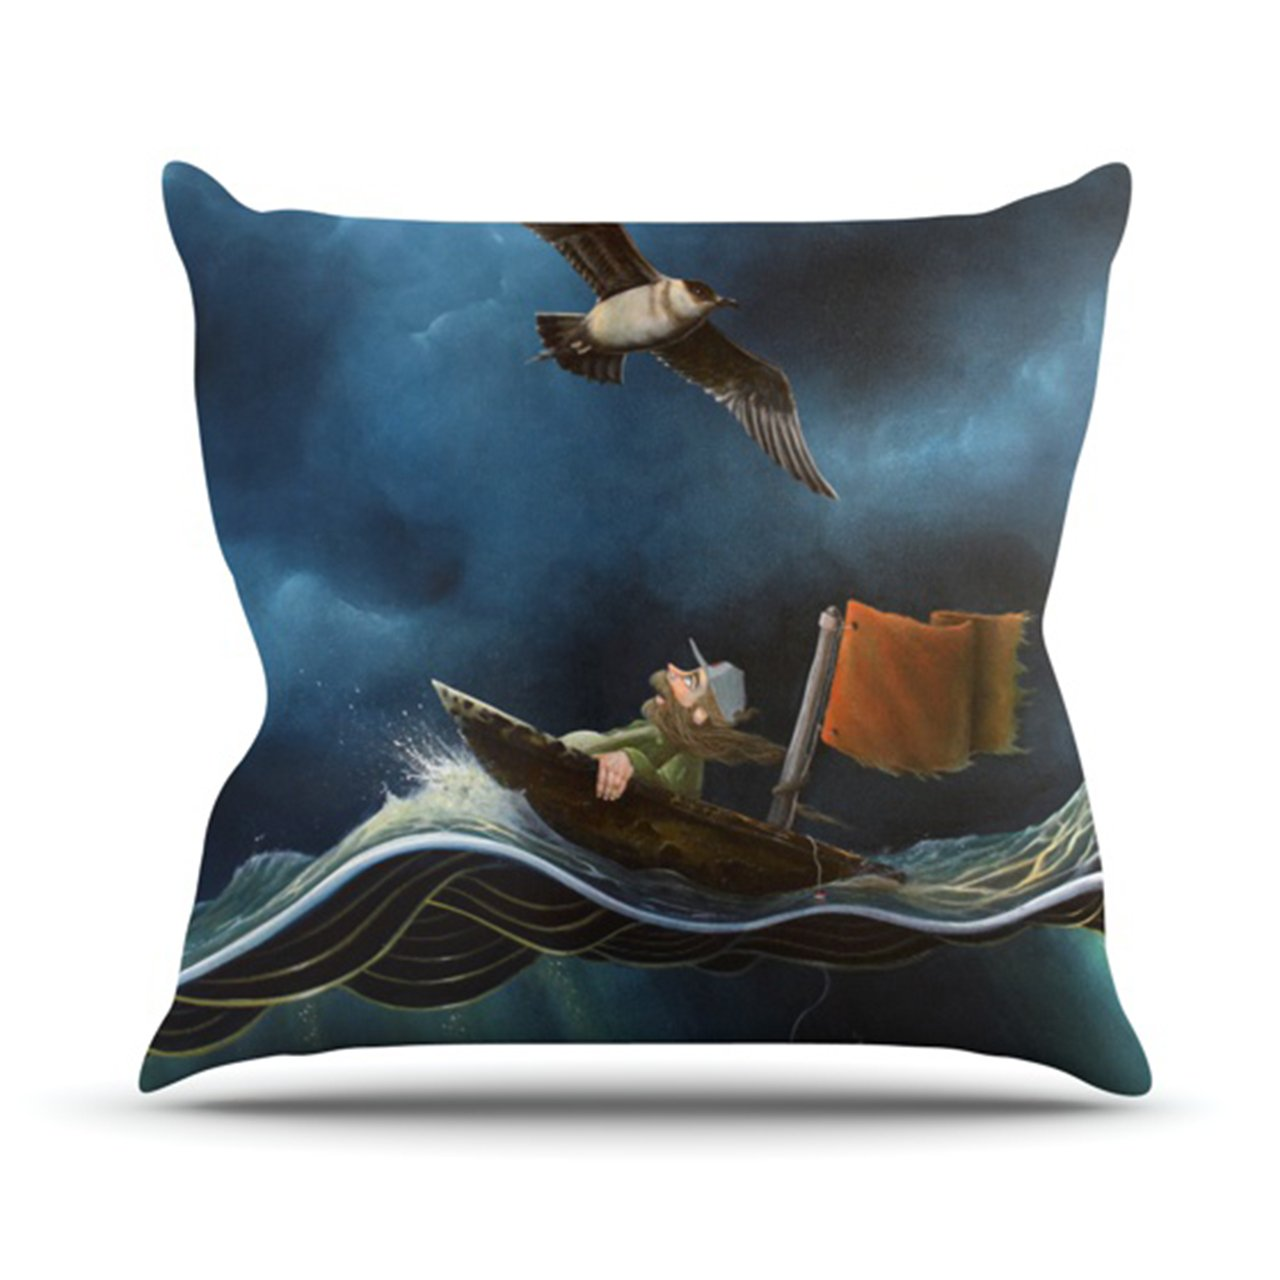 Kess InHouse Graham Curran Savages Throw Pillow 16 by 16-Inch